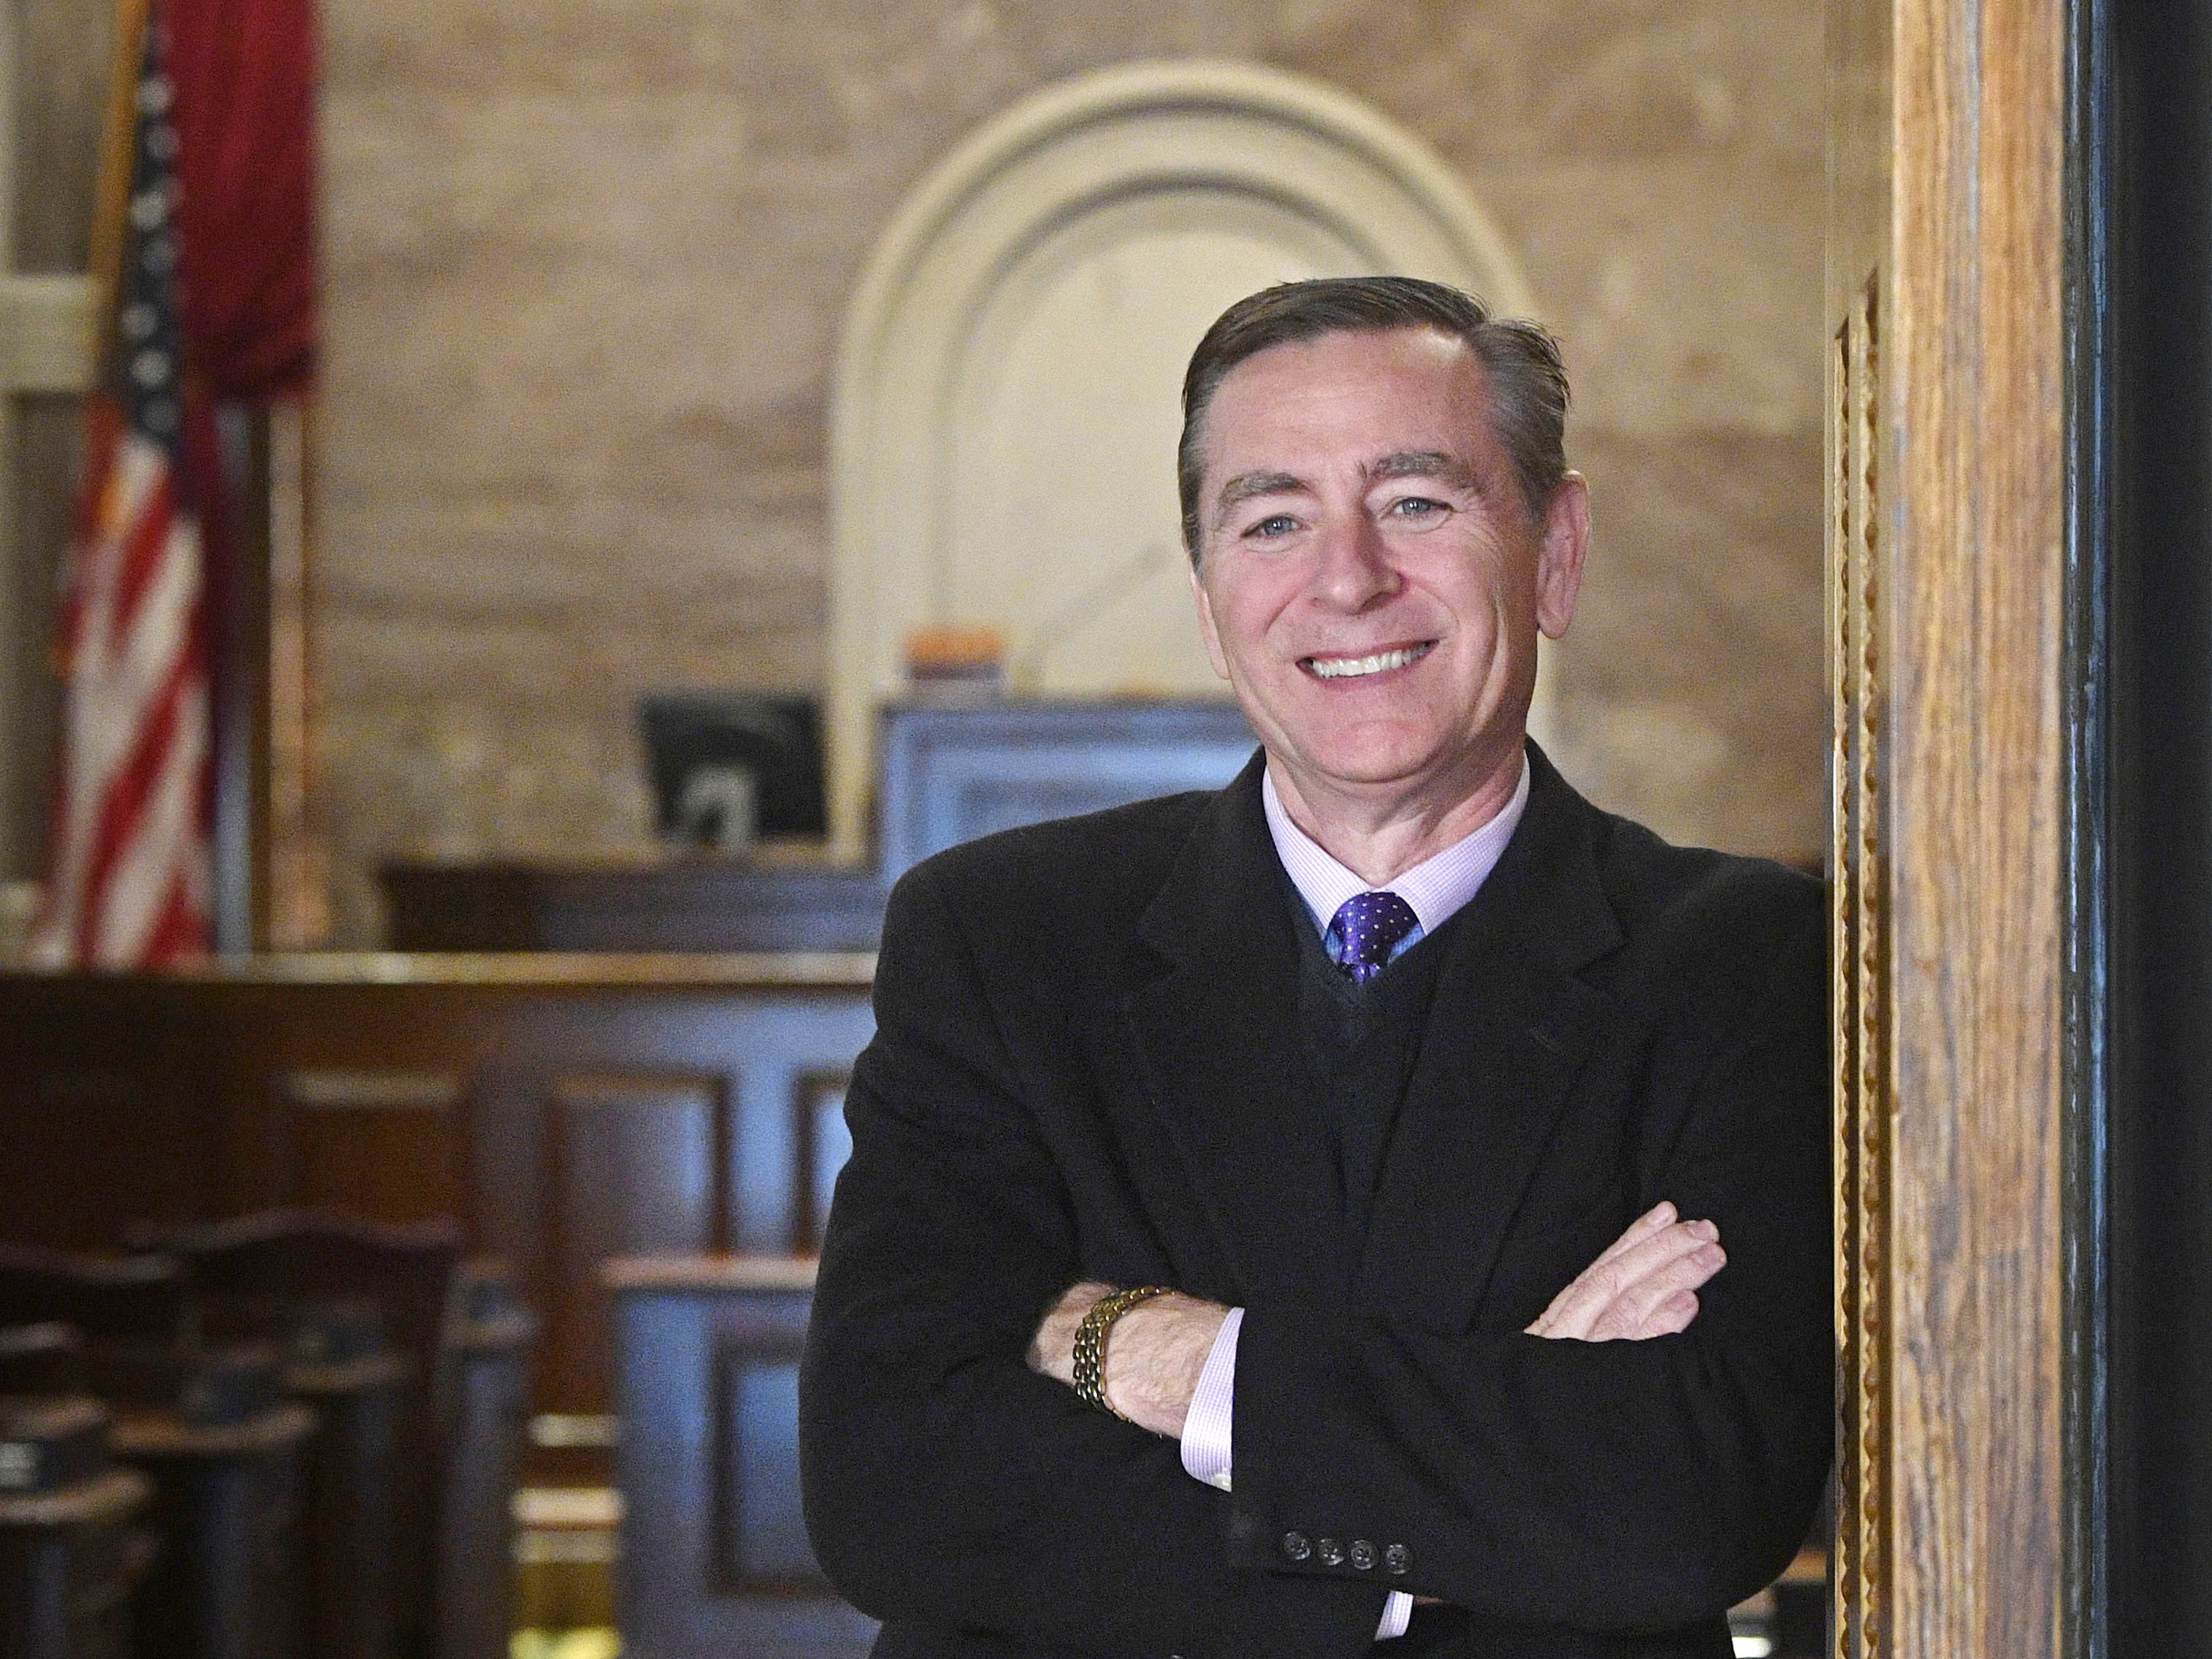 Rep. Glen Casada, posing at the door of the House chamber Nov. 28, 2018, may soon be the next House speaker.